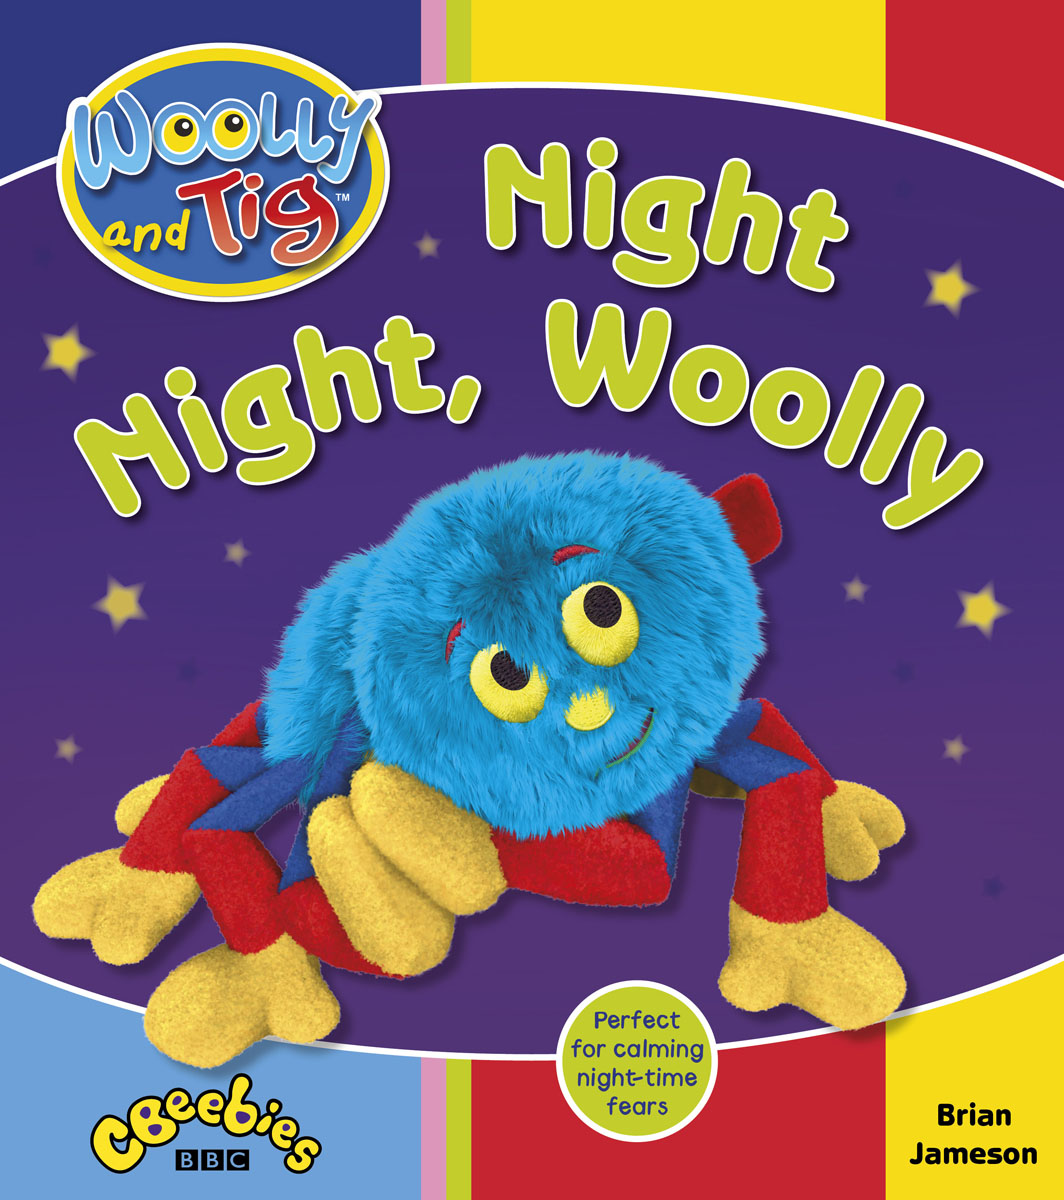 Woolly and Tig: Night Night, Woolly monsters go night night